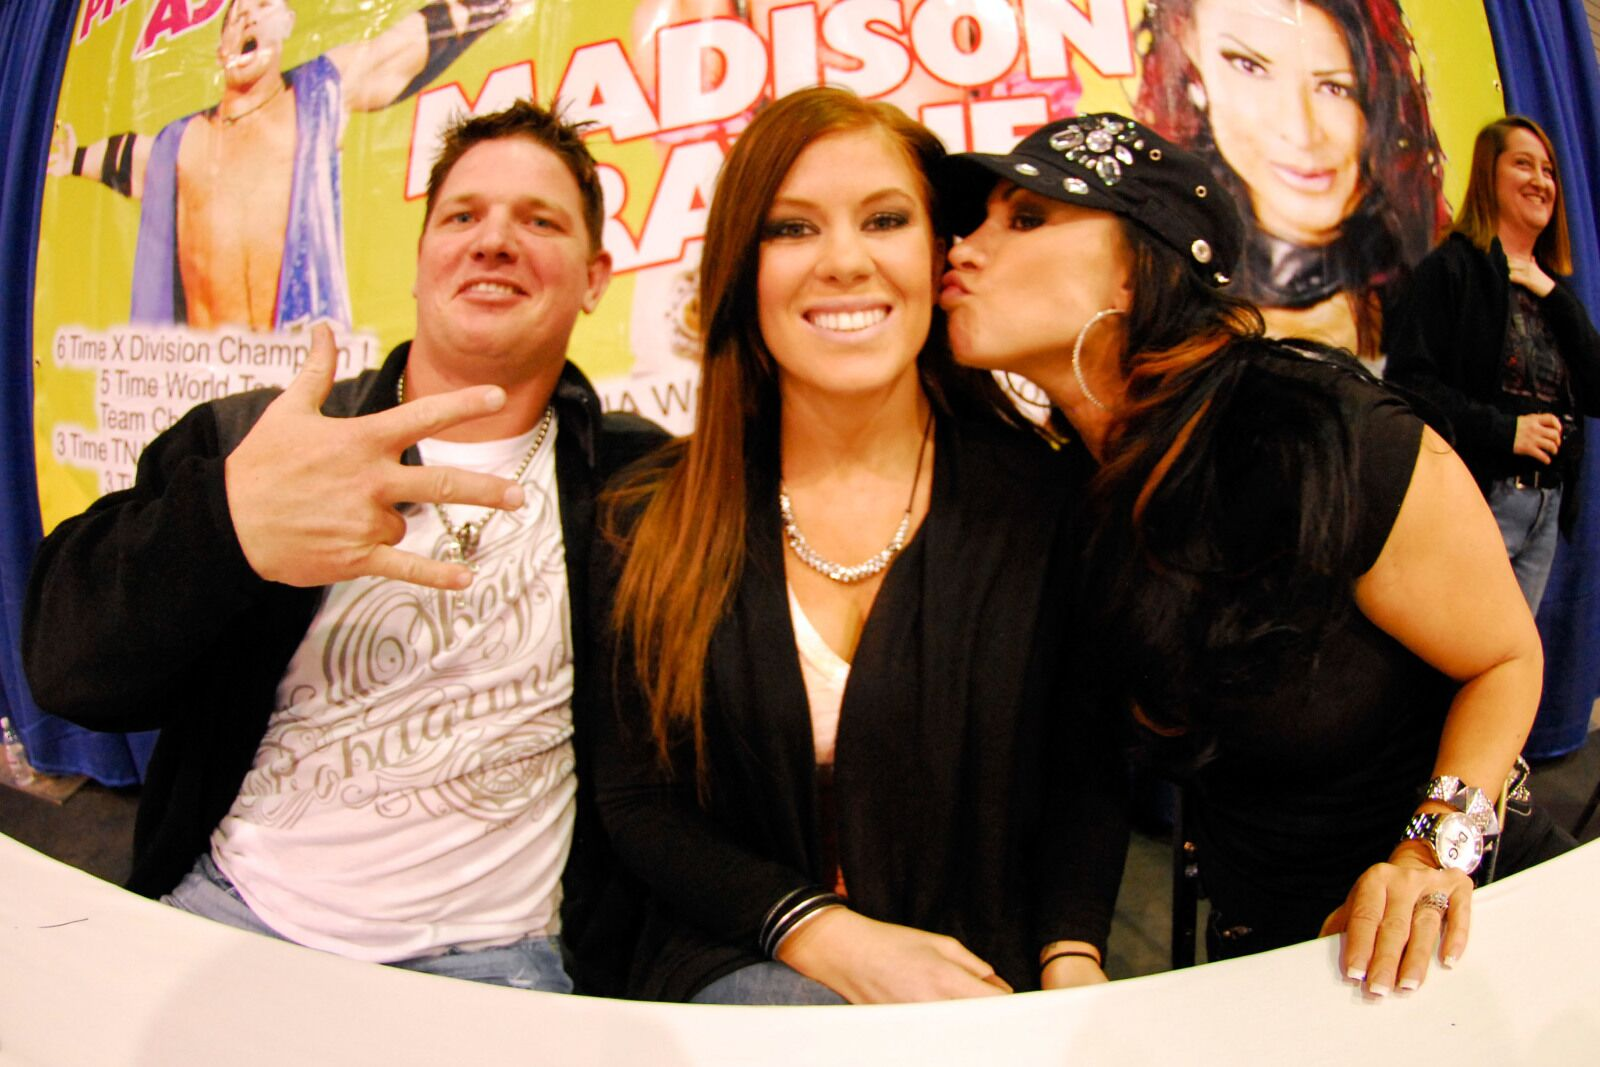 Report: Madison Rayne Receives Release From ROH